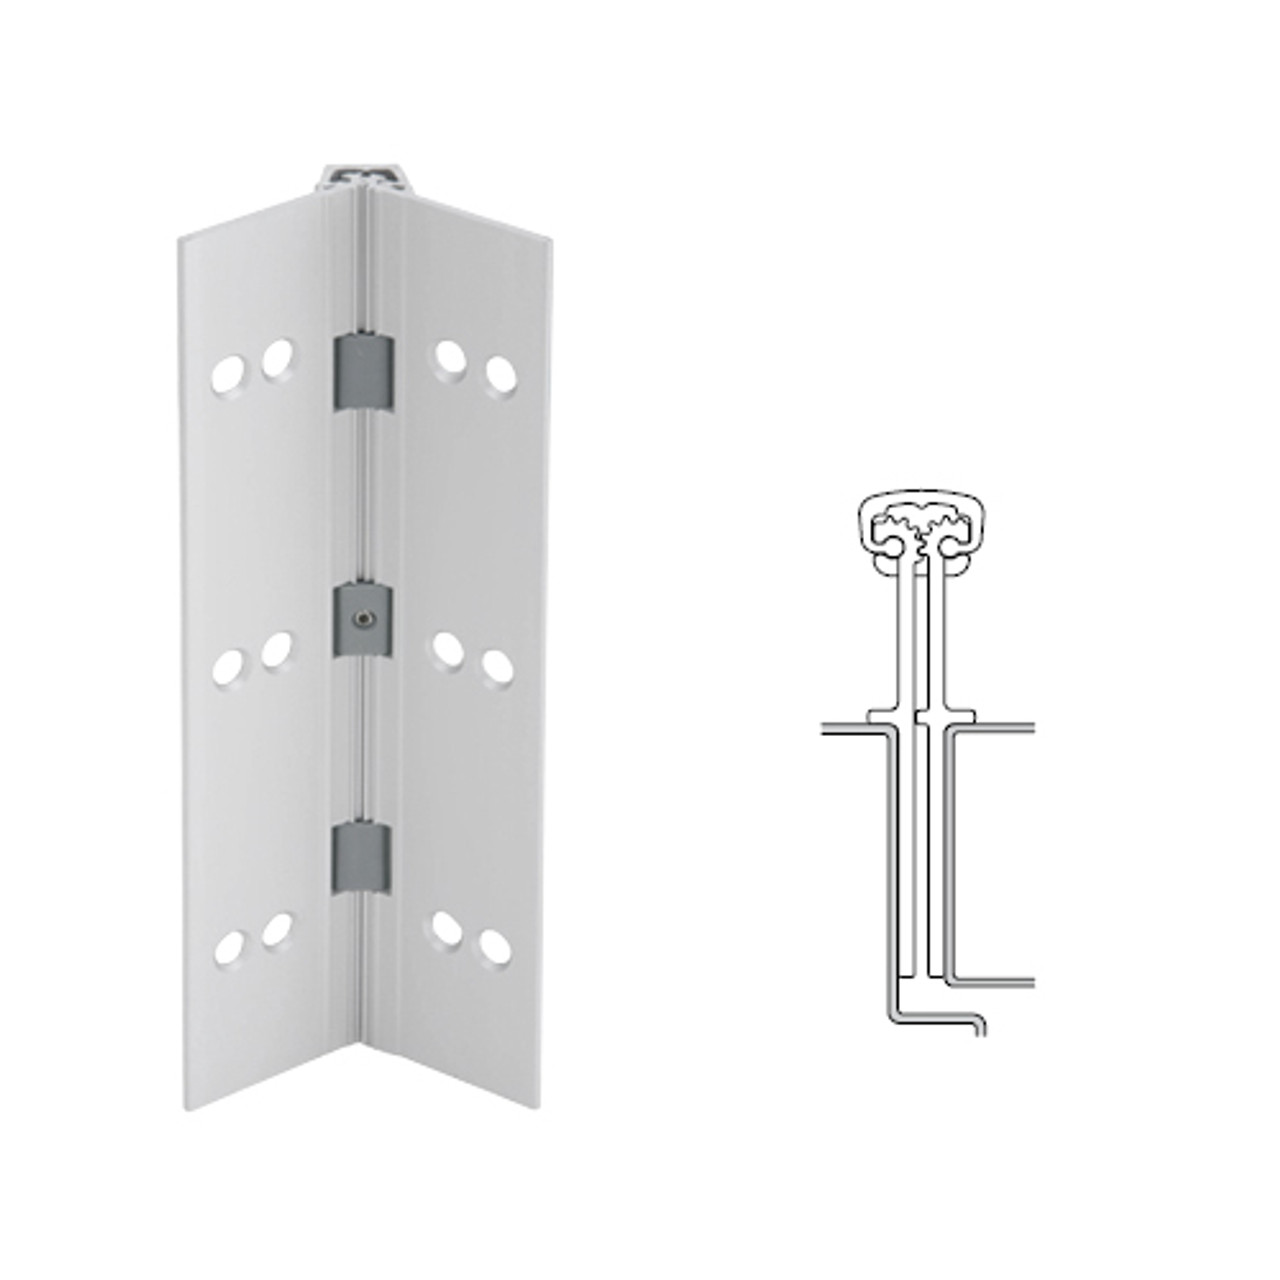 040XY-US28-120-TEKWD IVES Full Mortise Continuous Geared Hinges with Wood Screws in Satin Aluminum